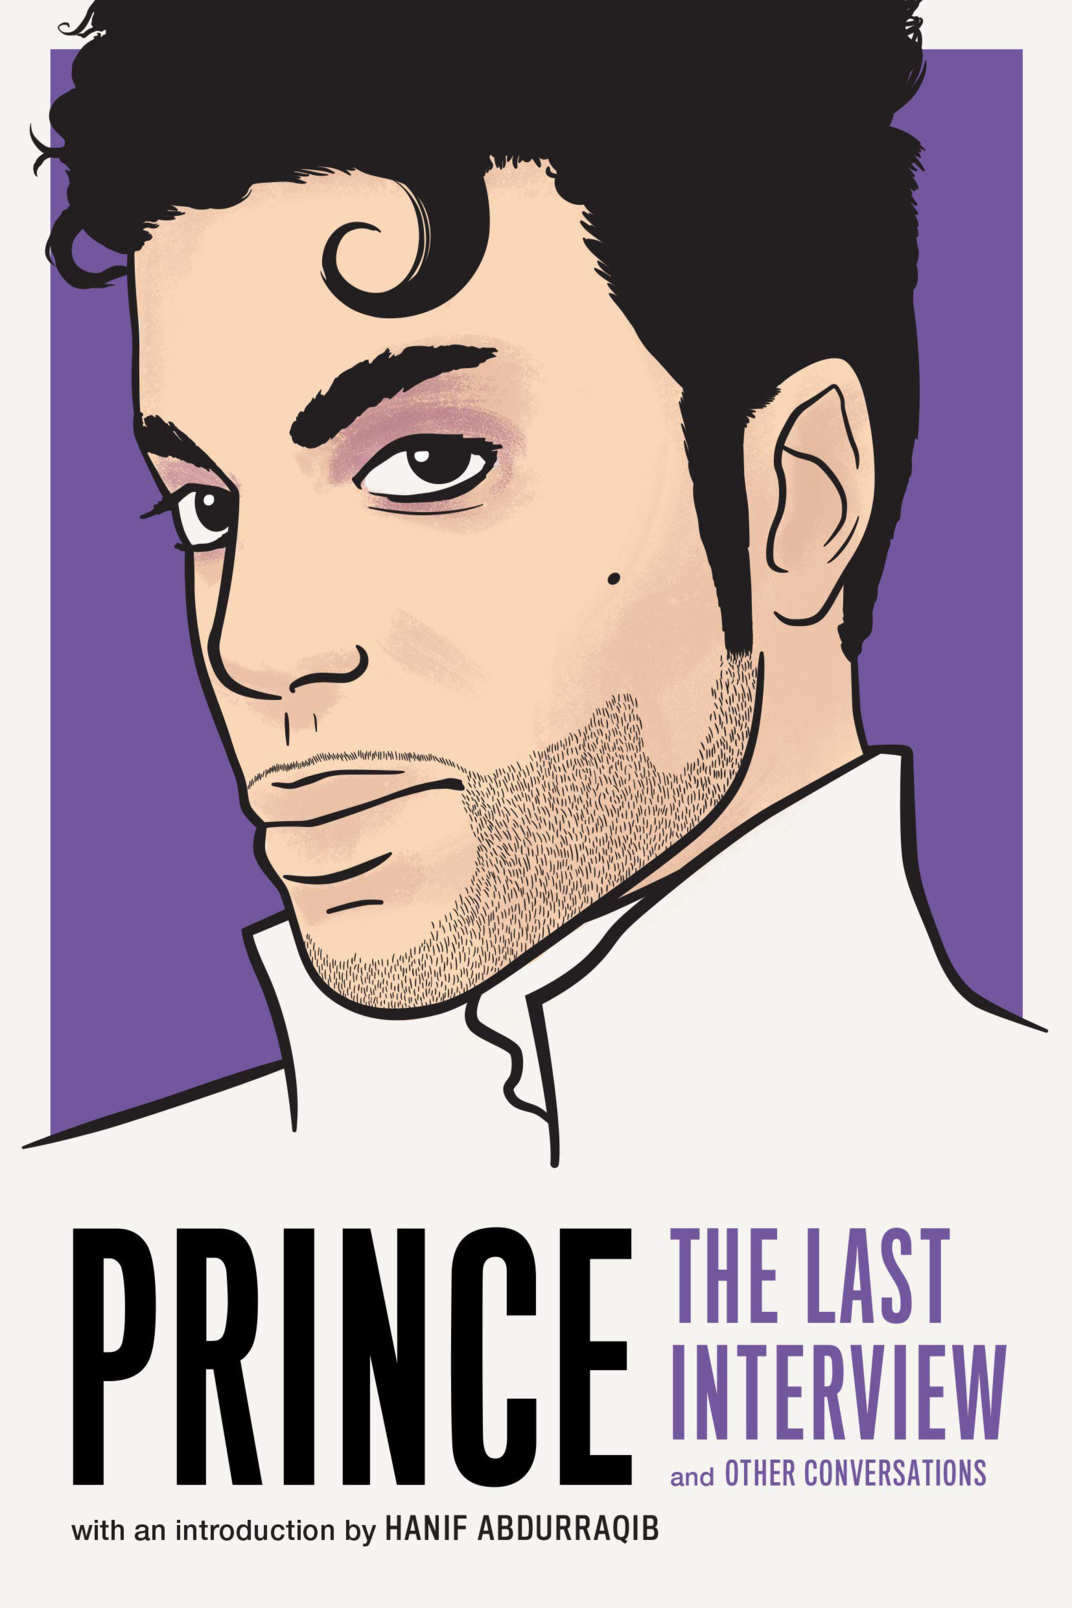 Prince: The Last Interview (with intro by Hanif Abdurraqib)